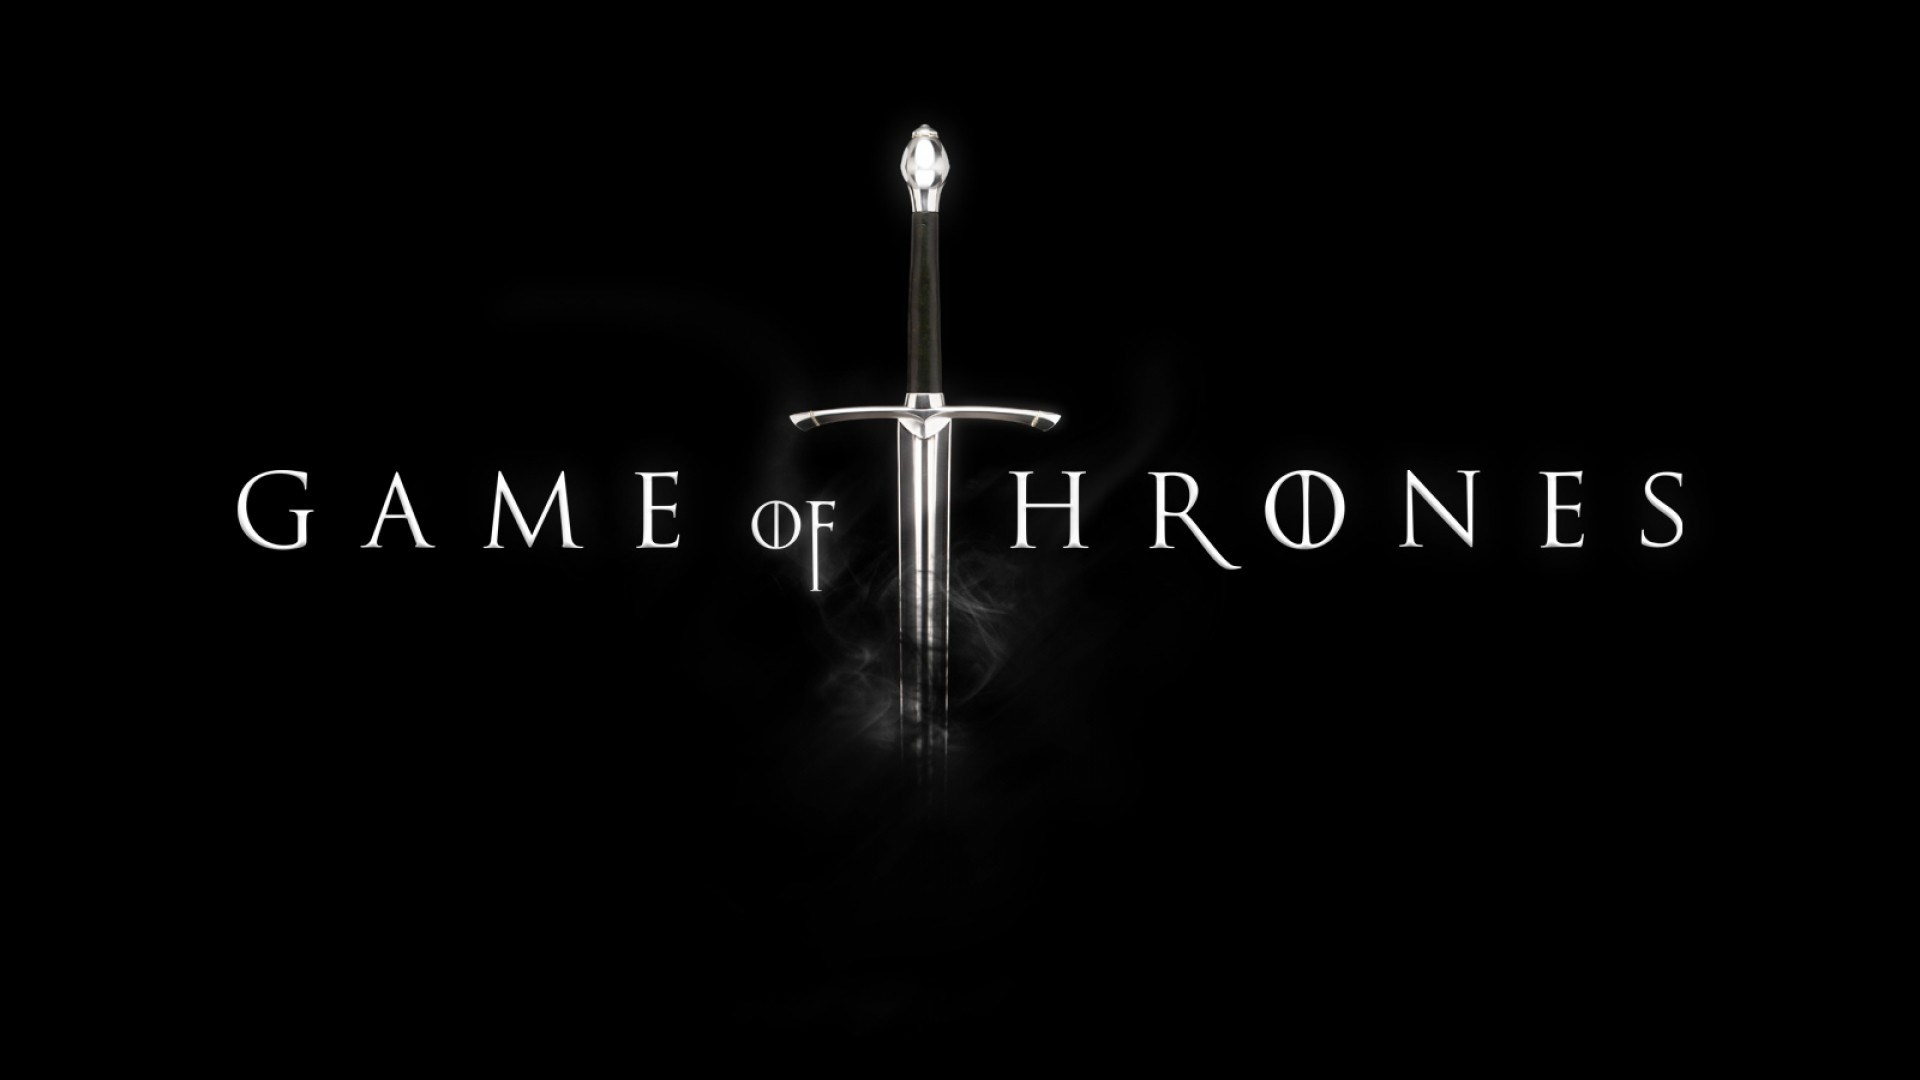 Corwin-Young-HQ-Definition-Desktop-game-of-thrones-backround-1920-x-1080-px-wallpaper-wp3404229